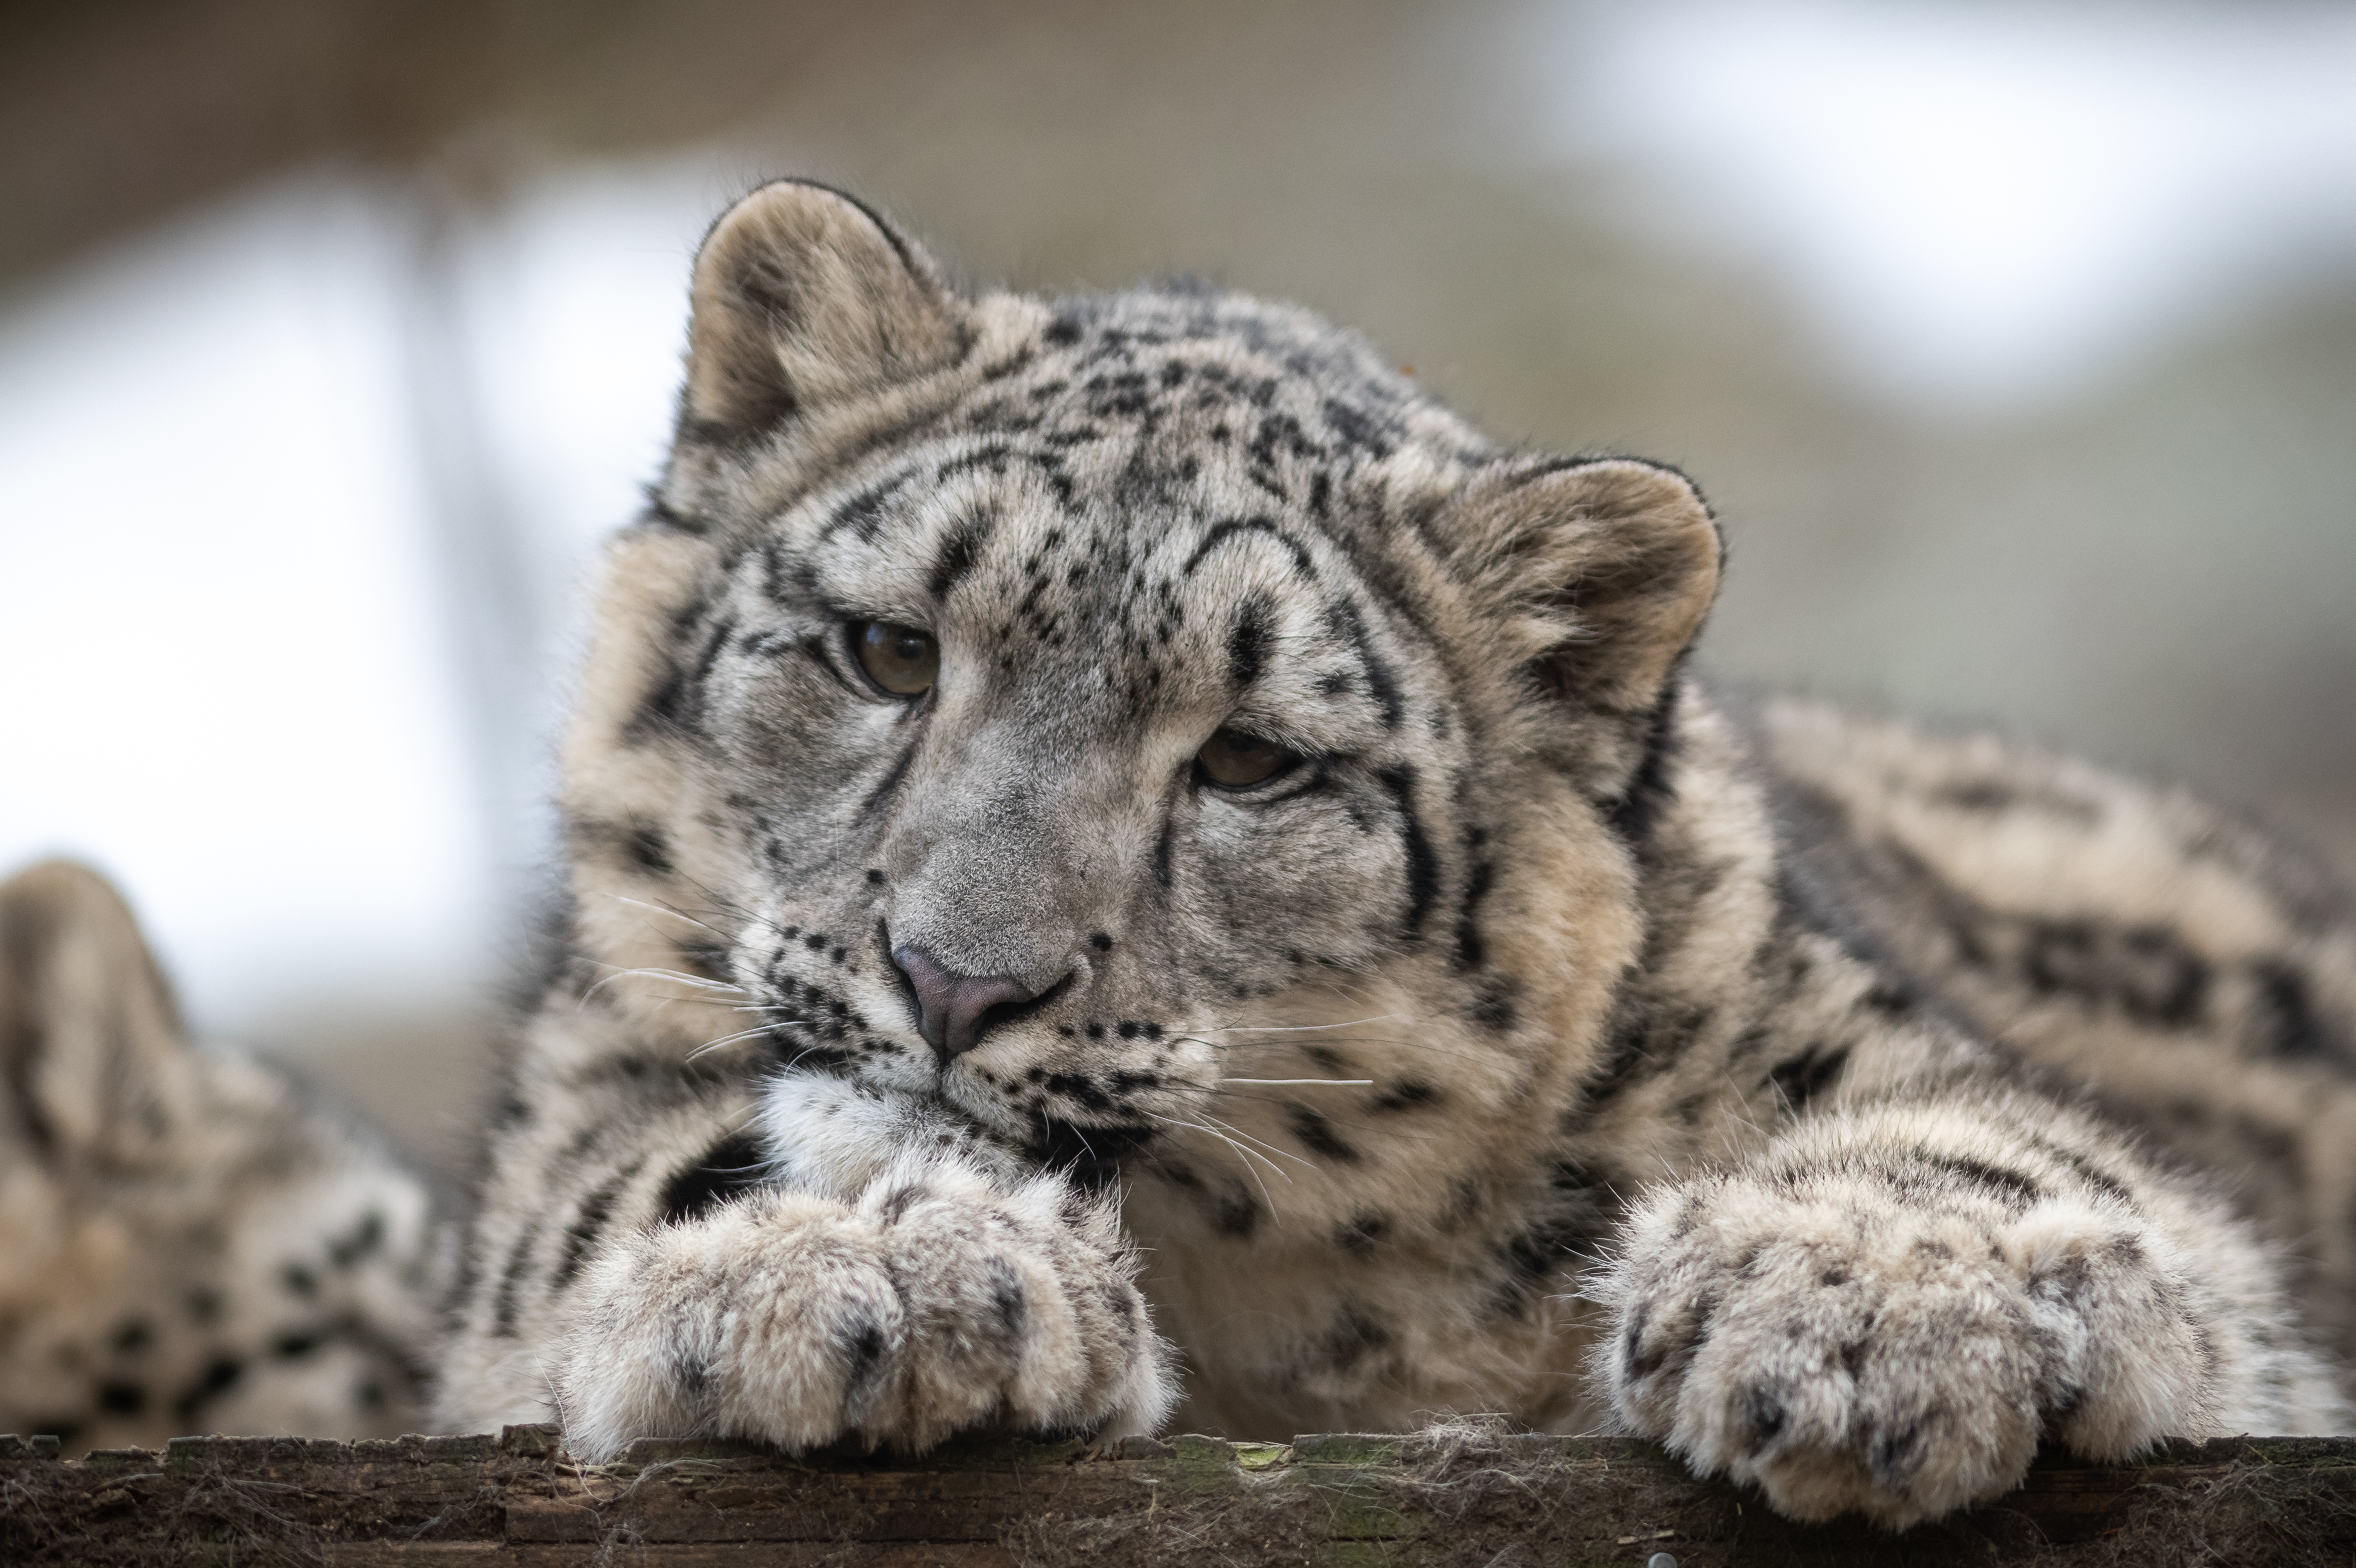 149188 download wallpaper Animals, Snow Leopard, Leopard, Young, Joey, Predator, Spotted, Spotty, Wildlife screensavers and pictures for free